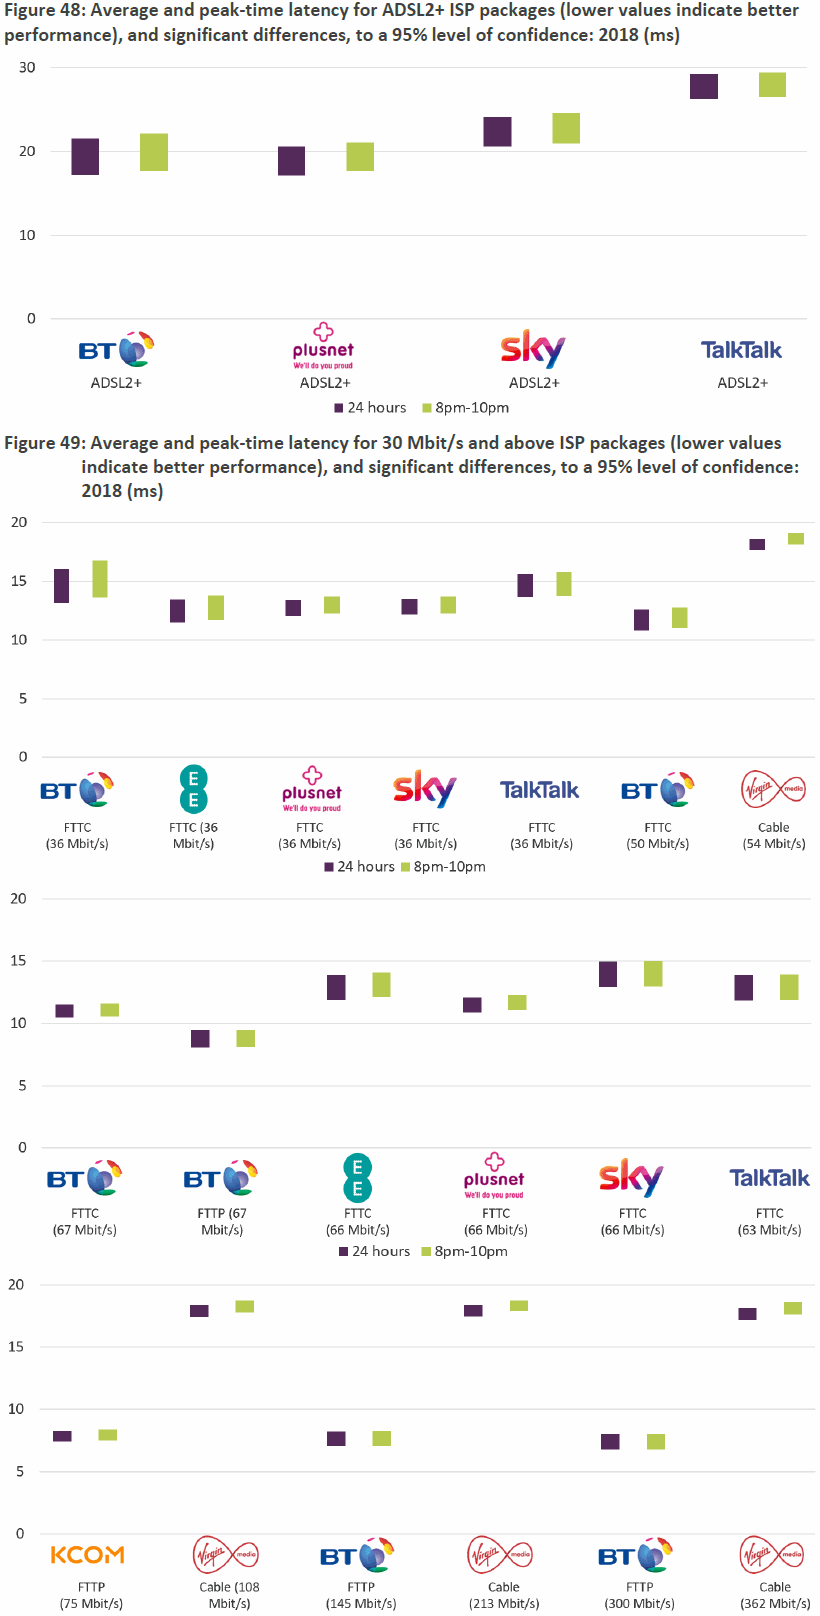 ofcom_2019_broadband_isp_uk_latency_performance